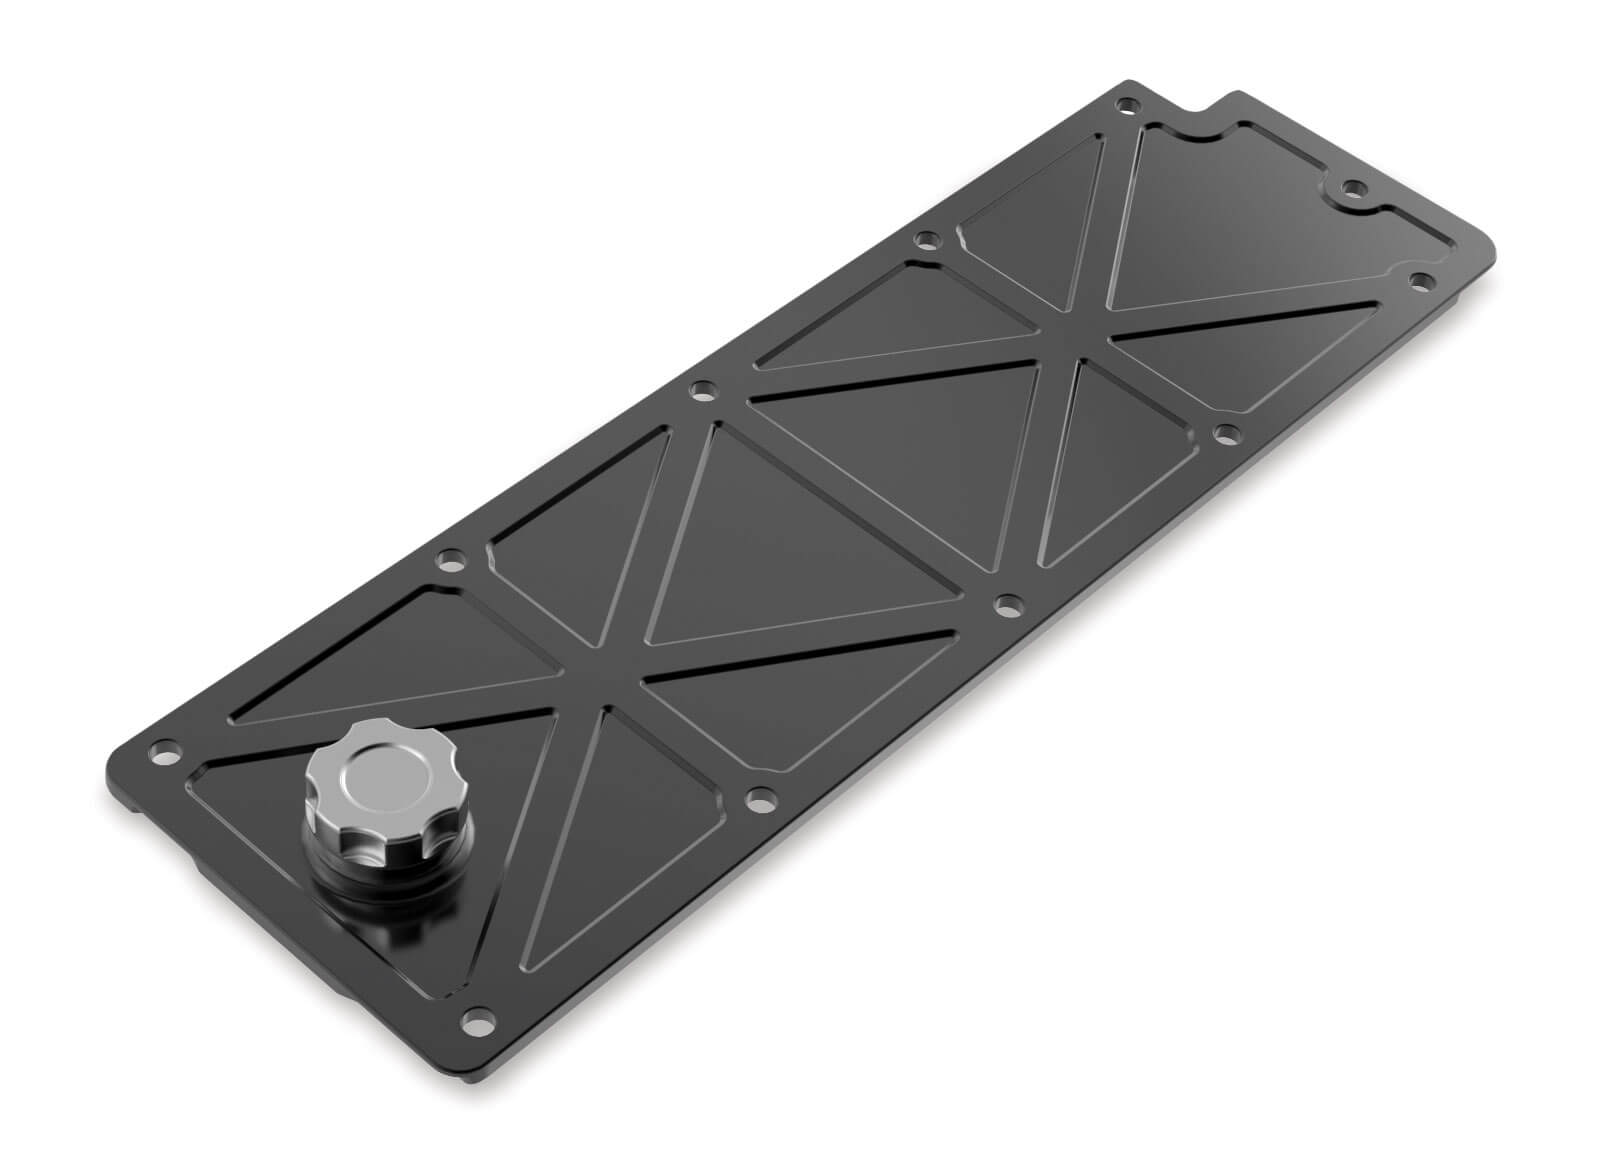 Holley LS2/LS3/LS7/LSX Valley Cover with Oil Fill - Black Billet